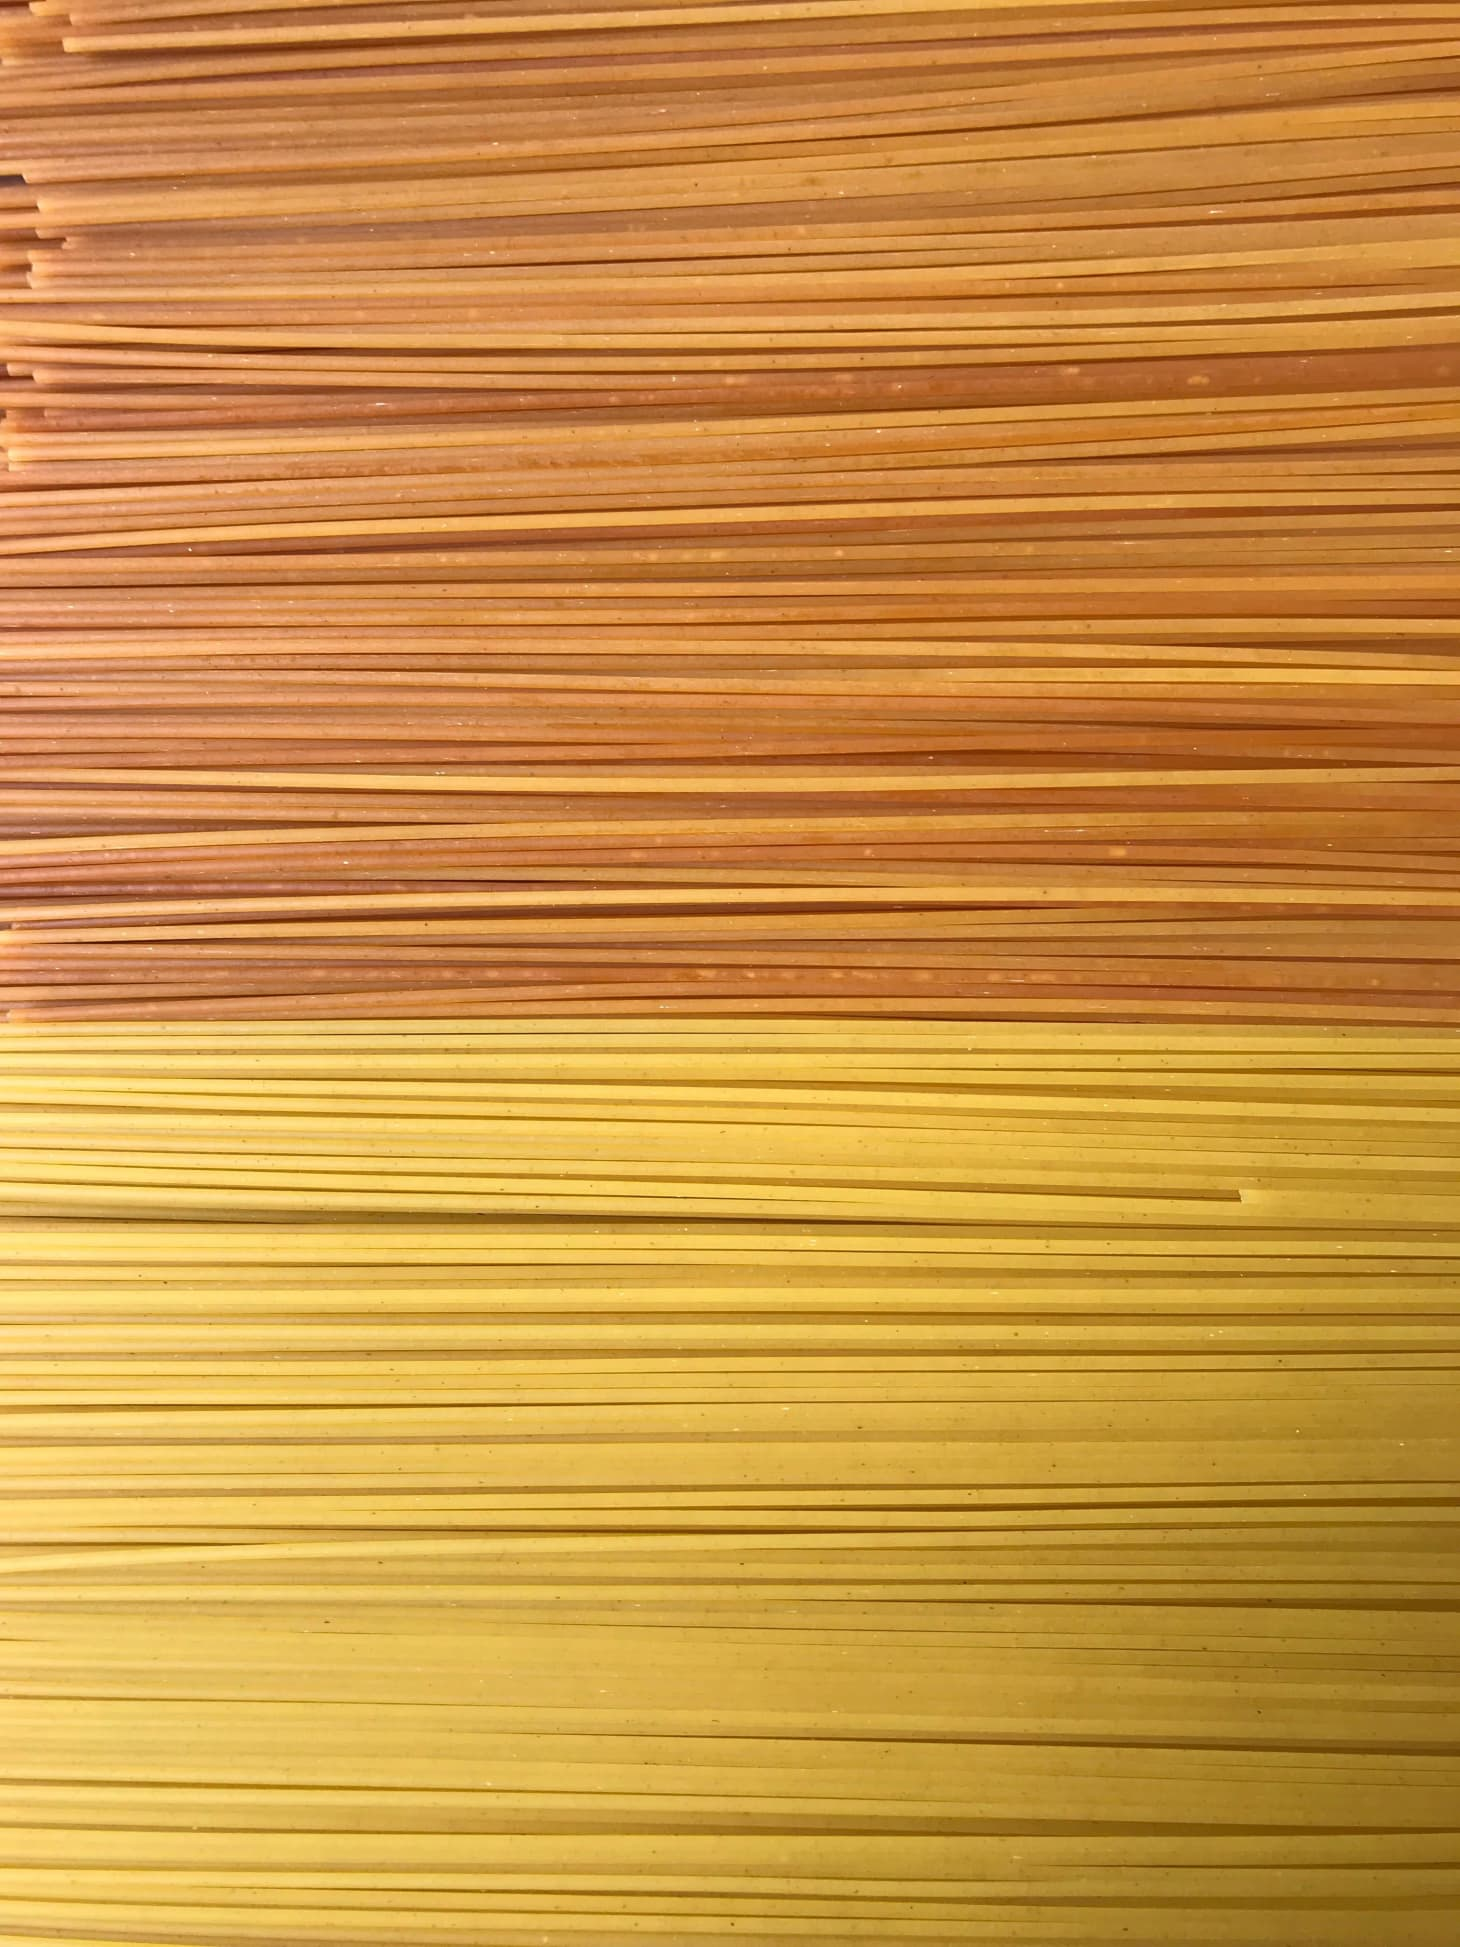 How To Boil Pasta Ahead Of Time